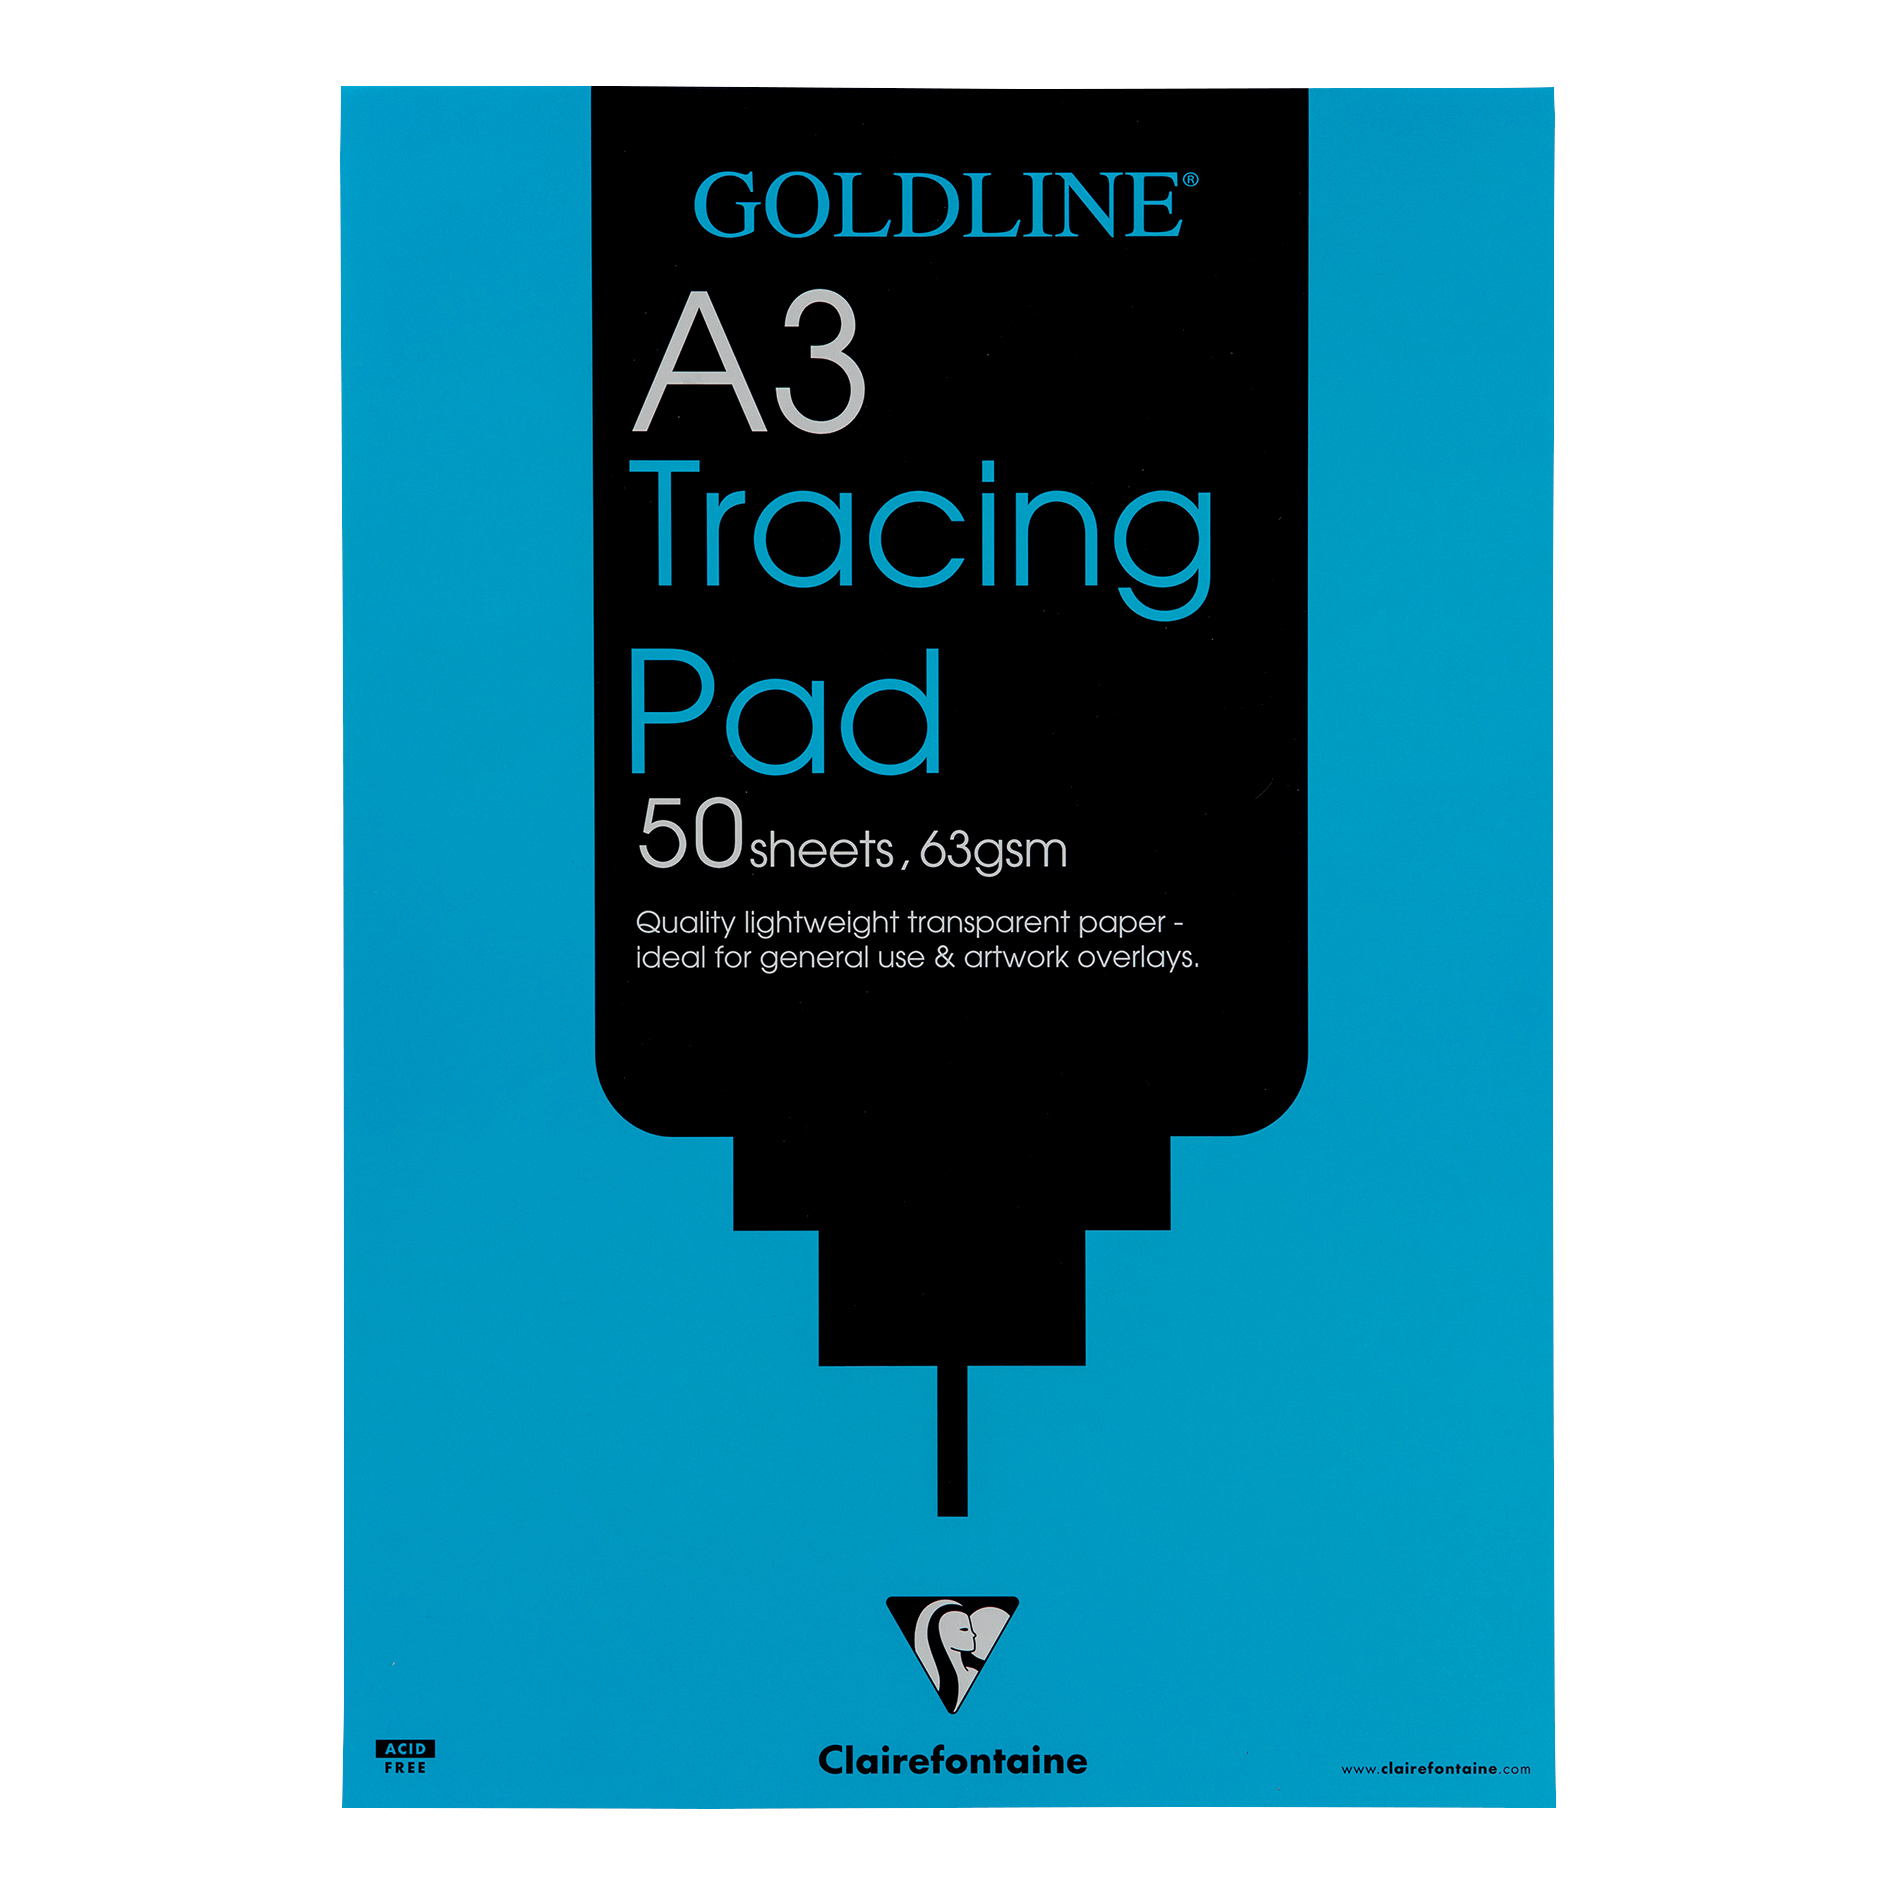 Goldline Popular Tracing Pad 63gsm Acid-free Paper 50 Sheets A3 Ref GPT2A3Z Pack 5